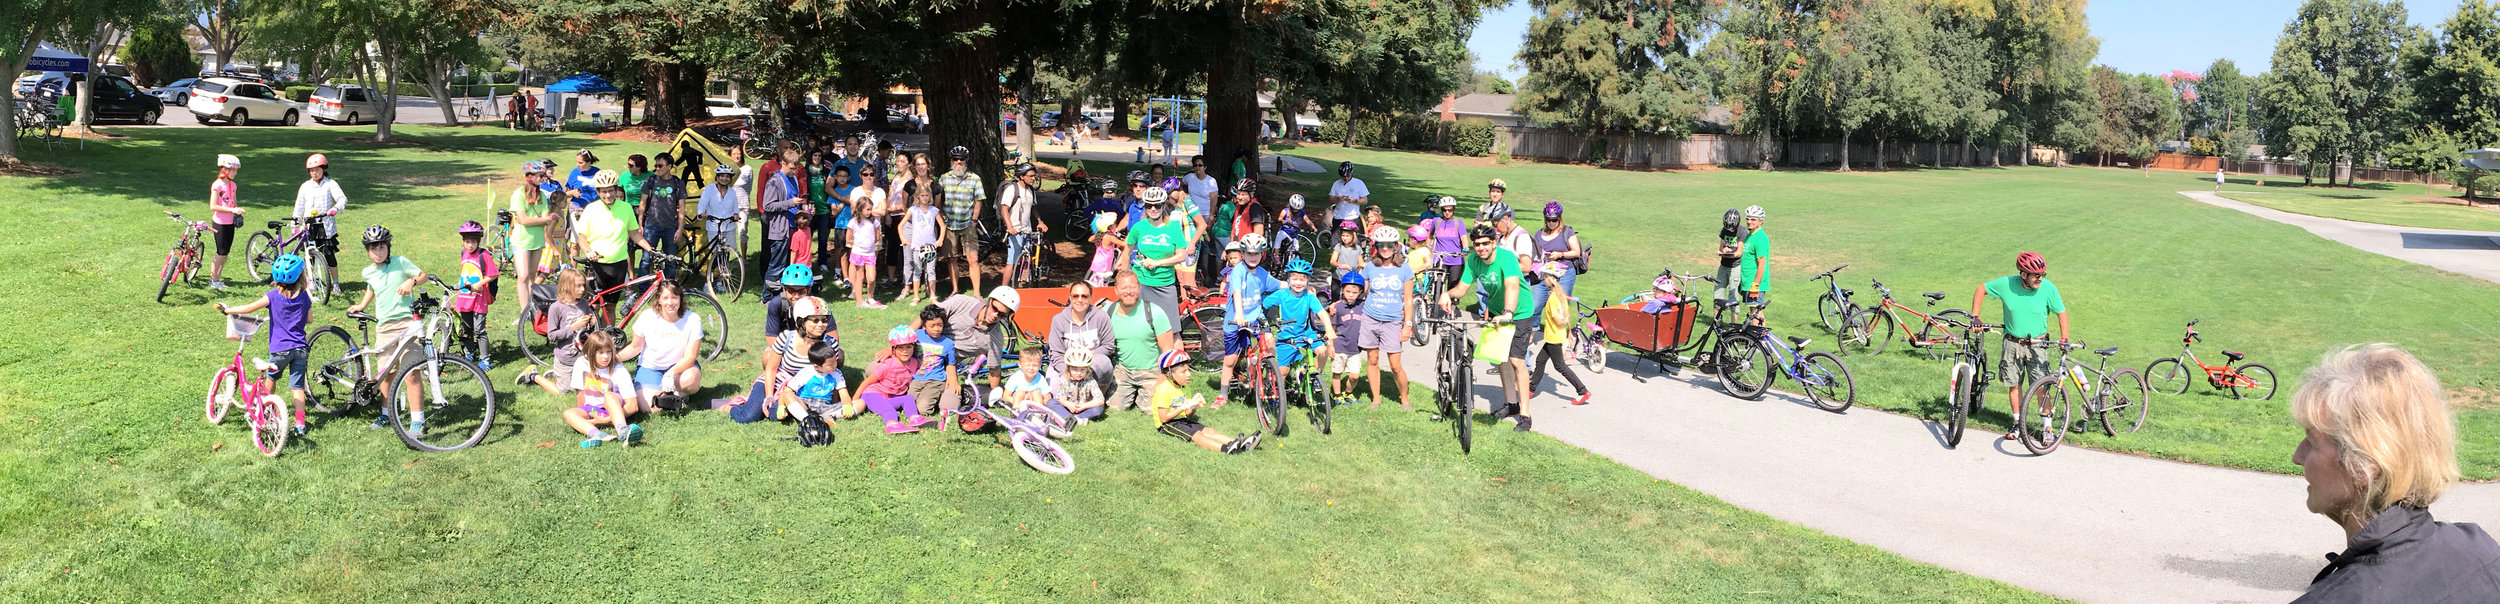 Families all ready to go for their ride - Photo by John Scarboro